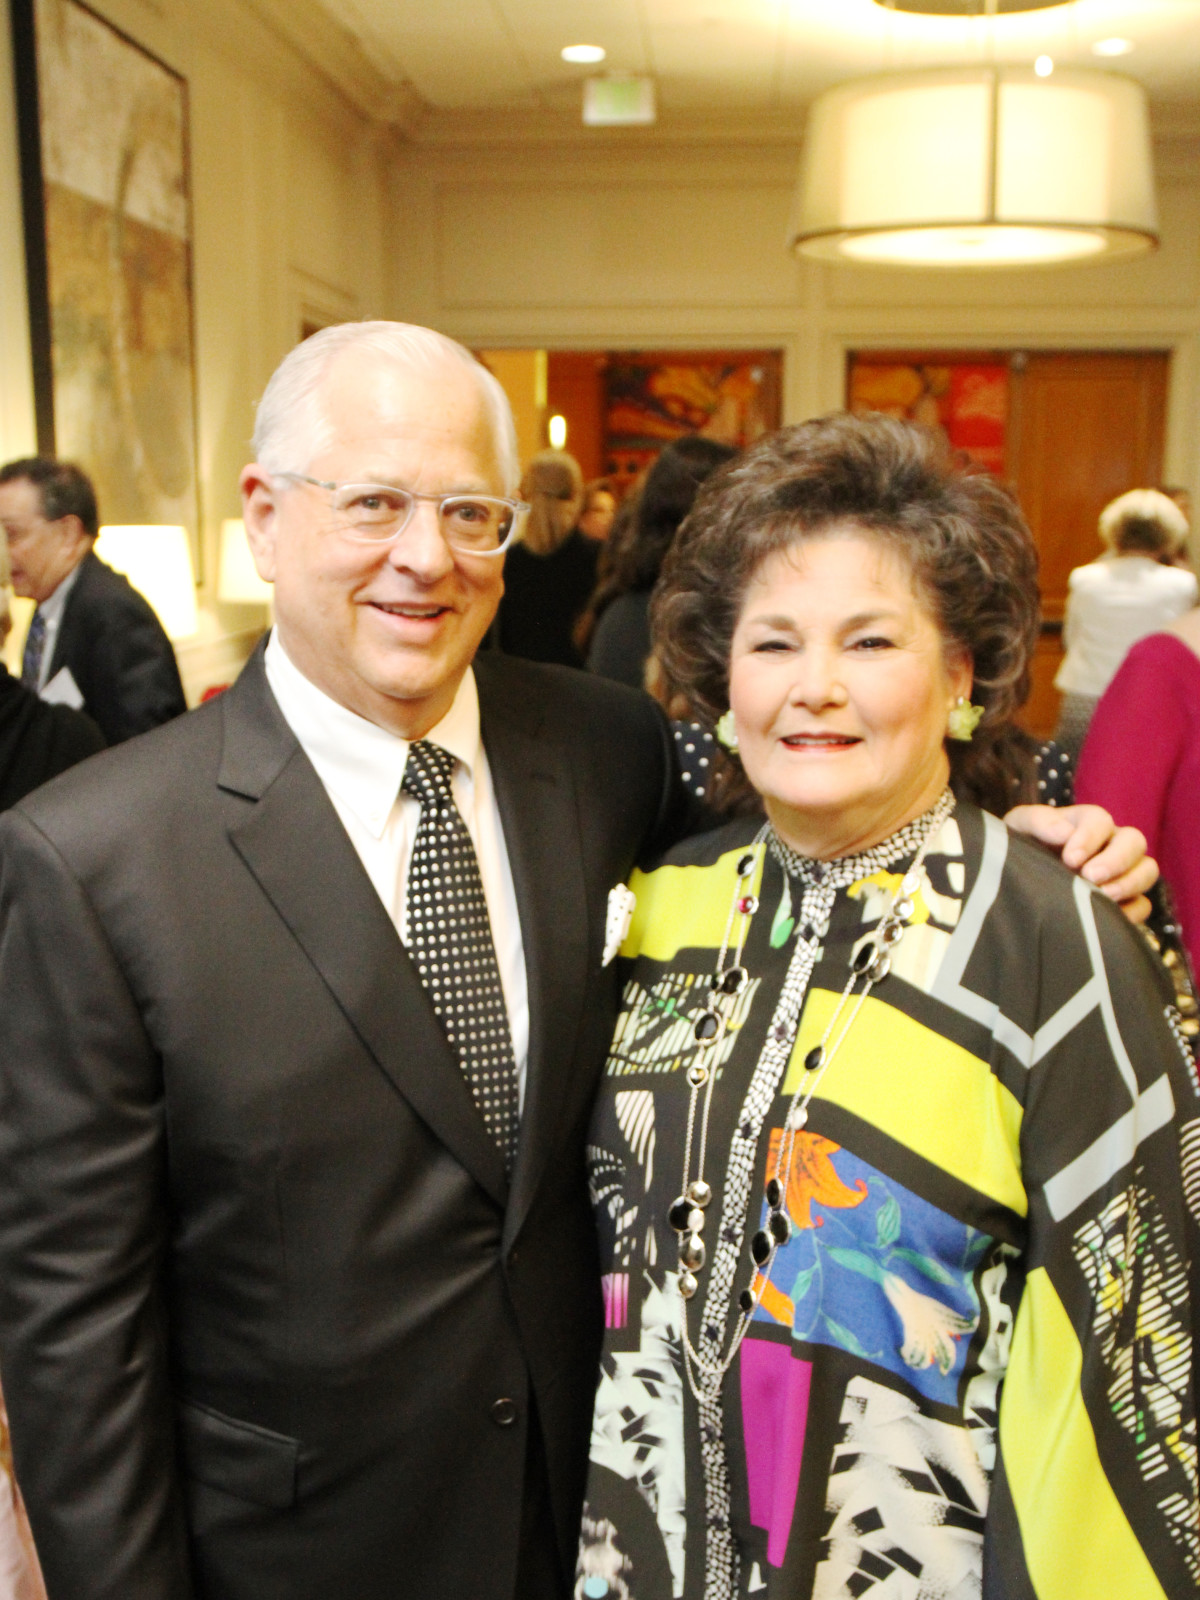 Steve Borick, Barbara Robertson at Menninger Clinic luncheon